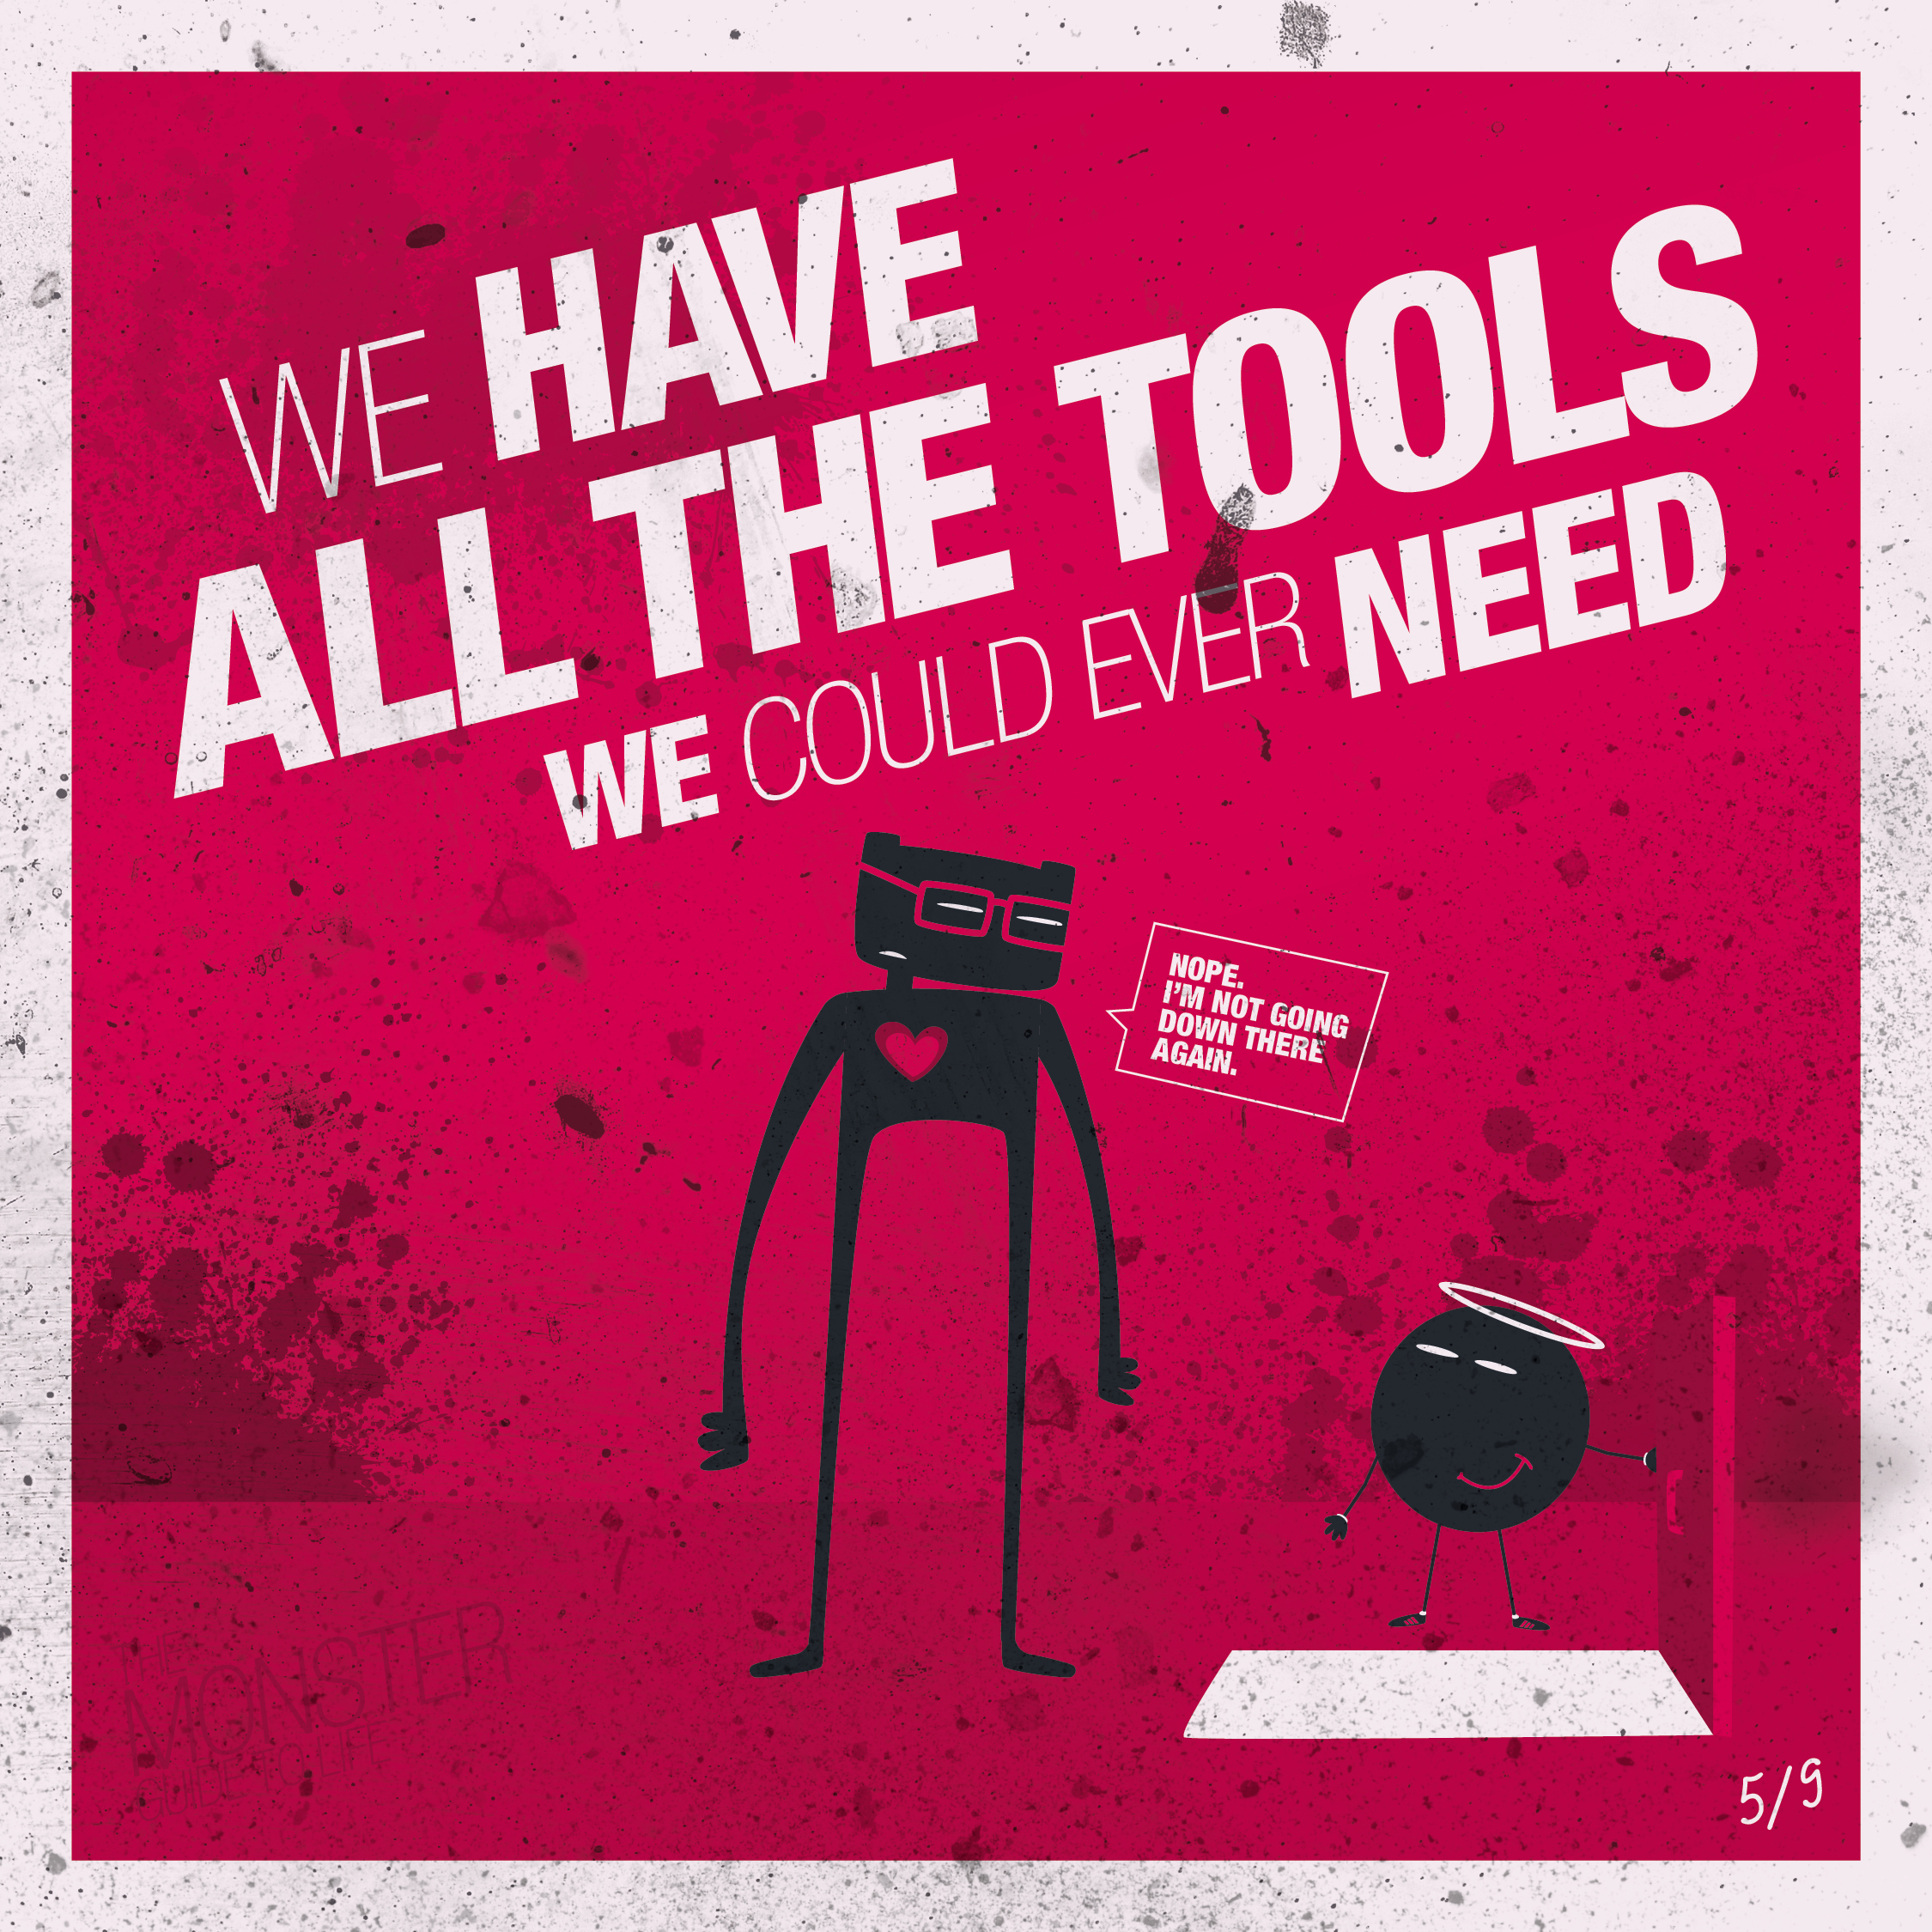 We have all the tools we could ever need